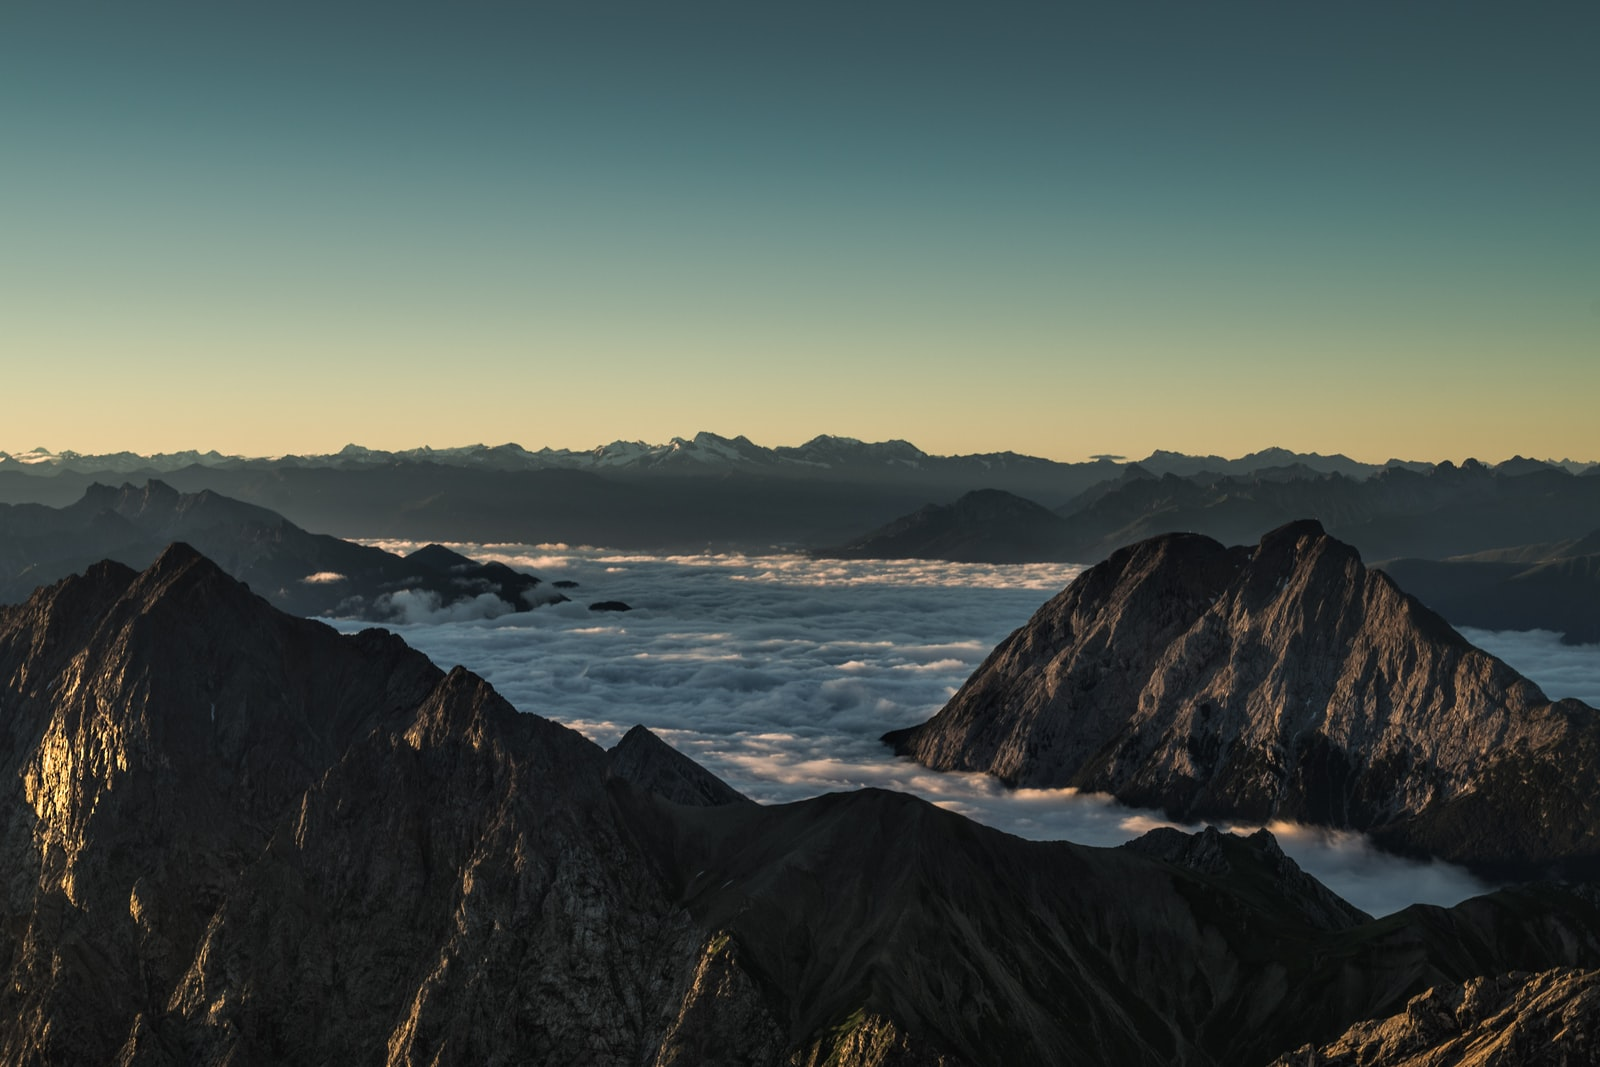 mountains surrounded with clouds